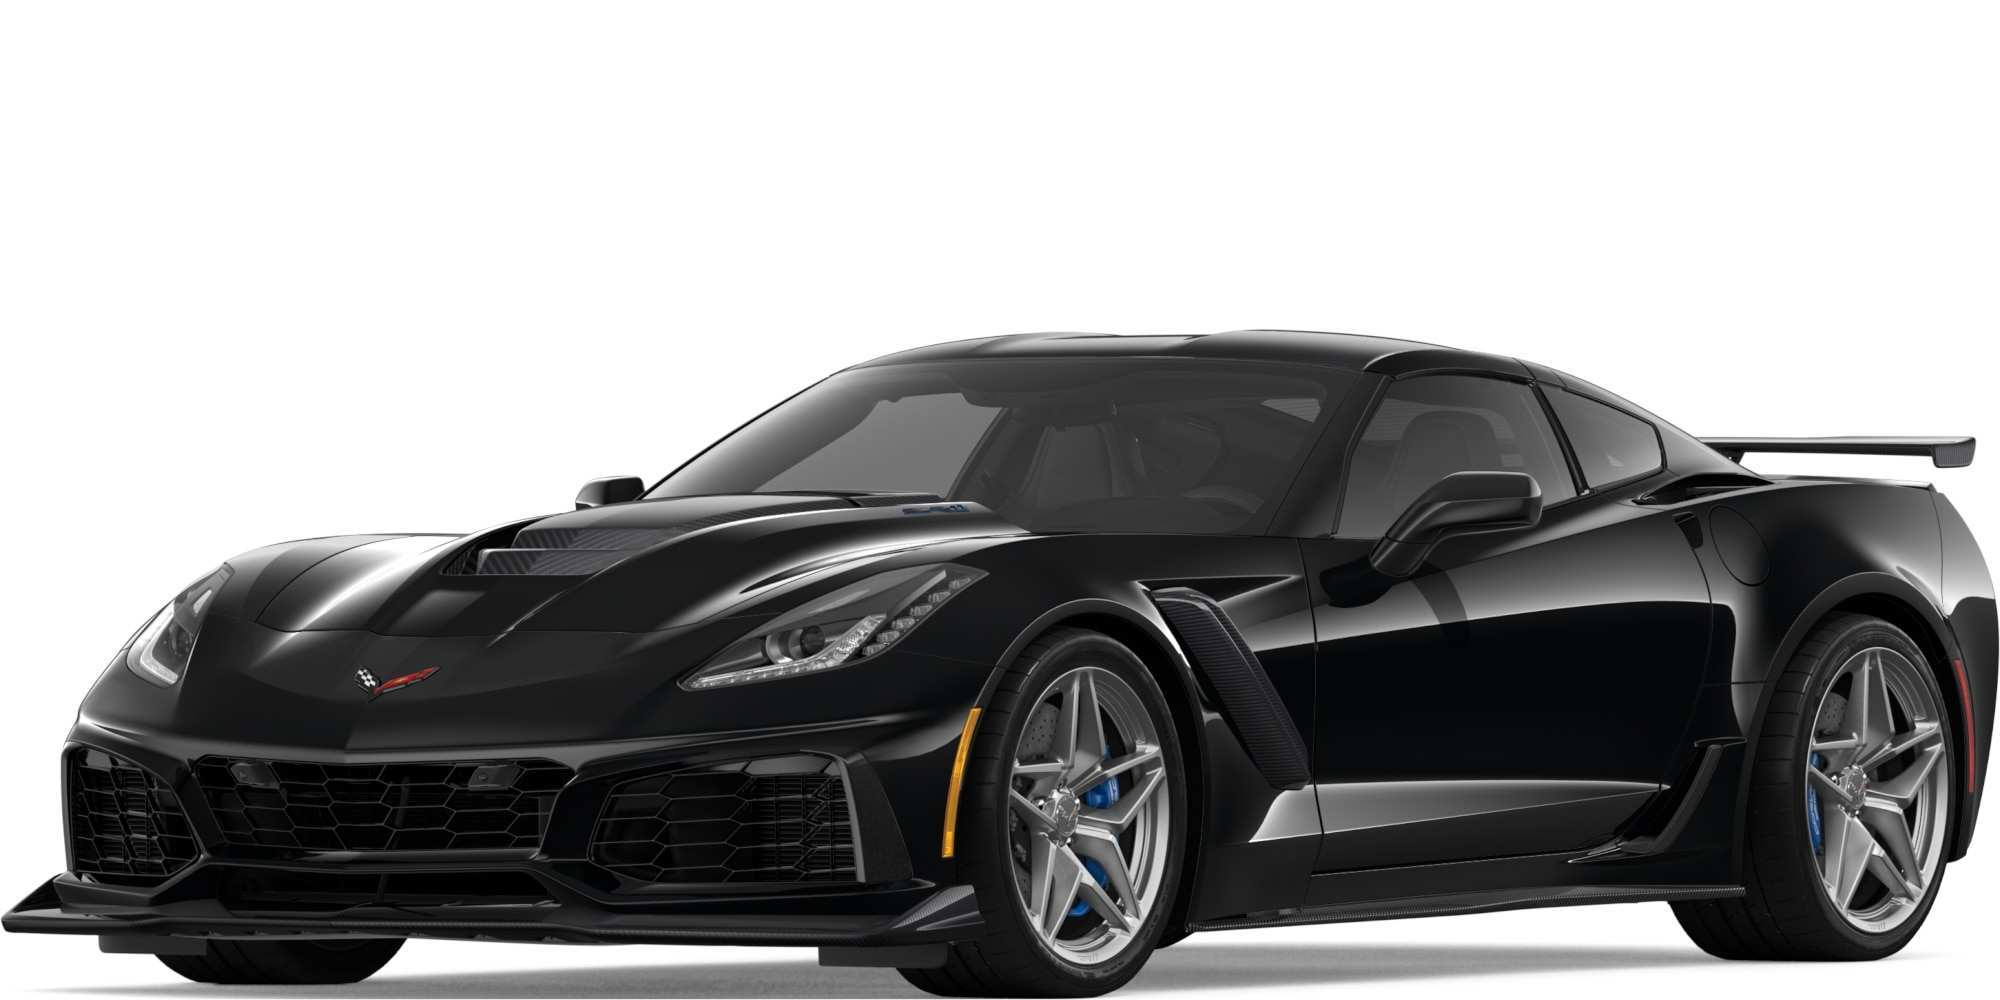 84 The Best 2019 Chevrolet Corvette Zr1 Model